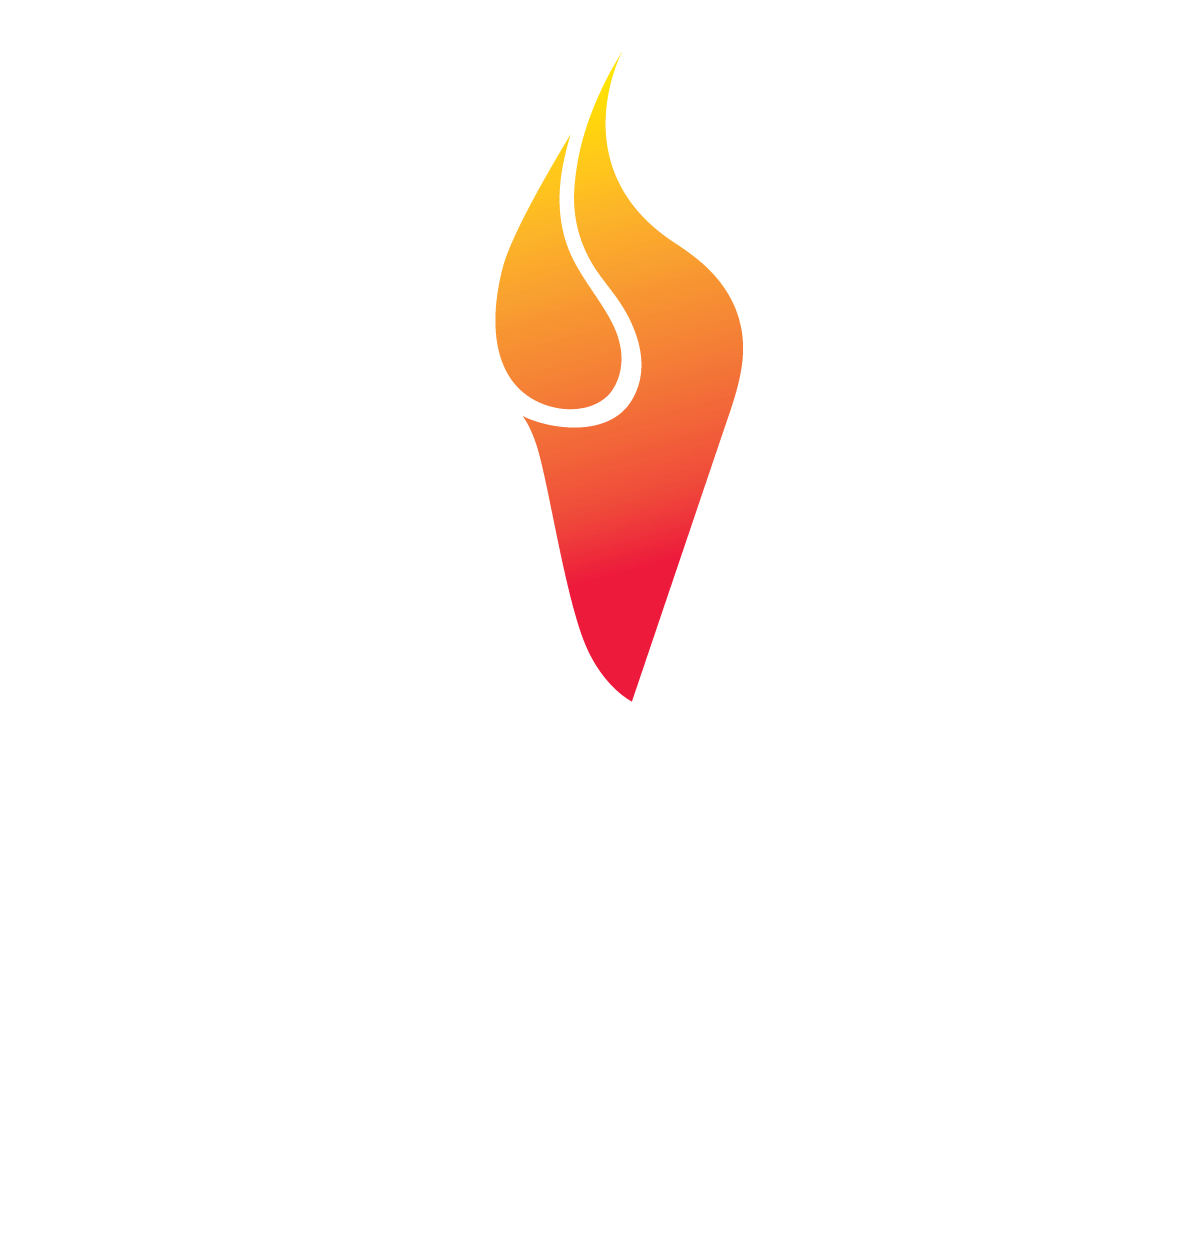 Virginia War Memorial